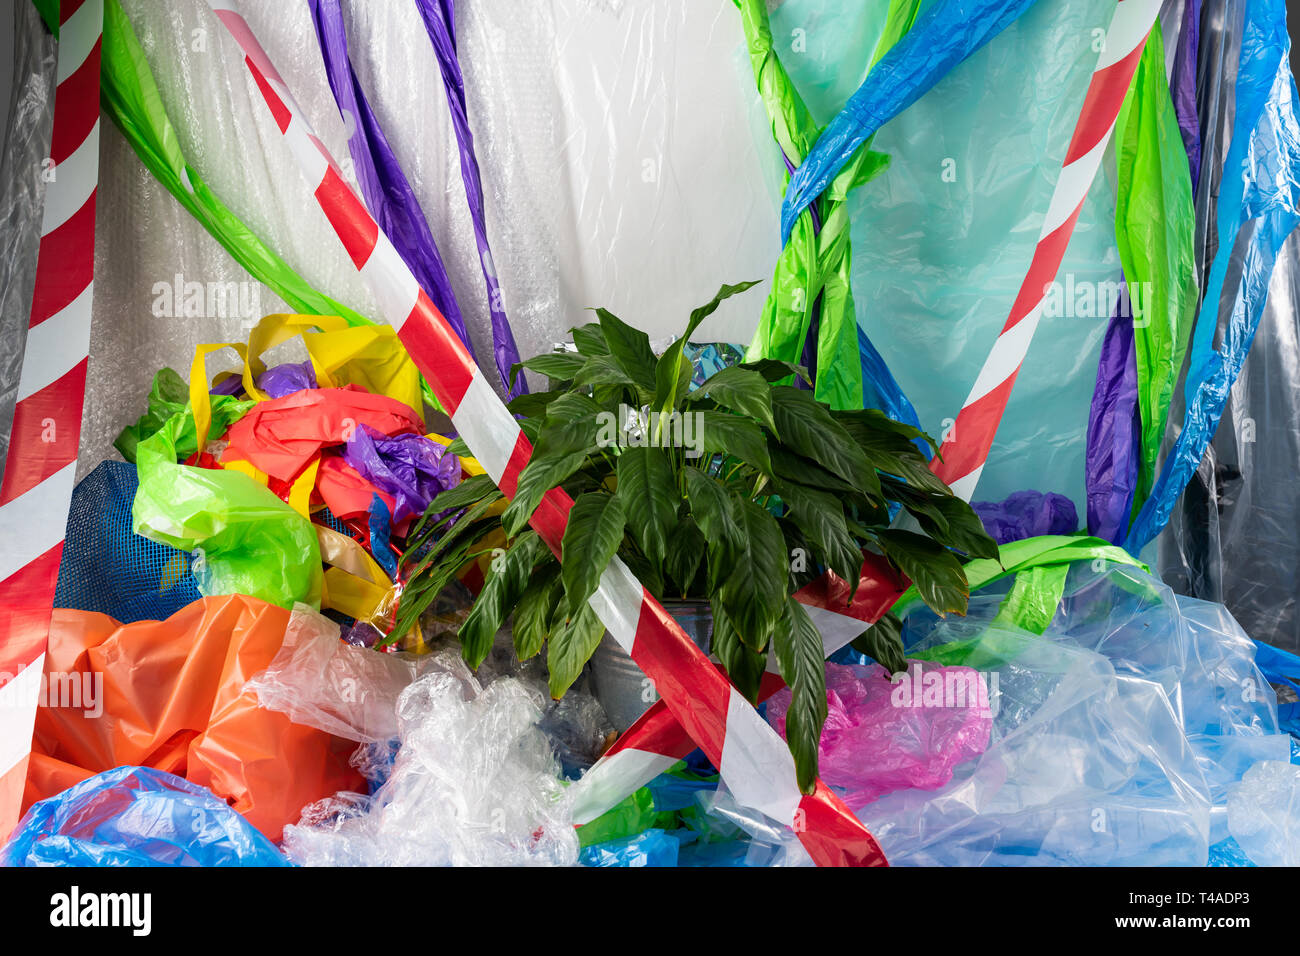 Green fresh lush plant placed in the middle of the plastic garbage - Stock Image